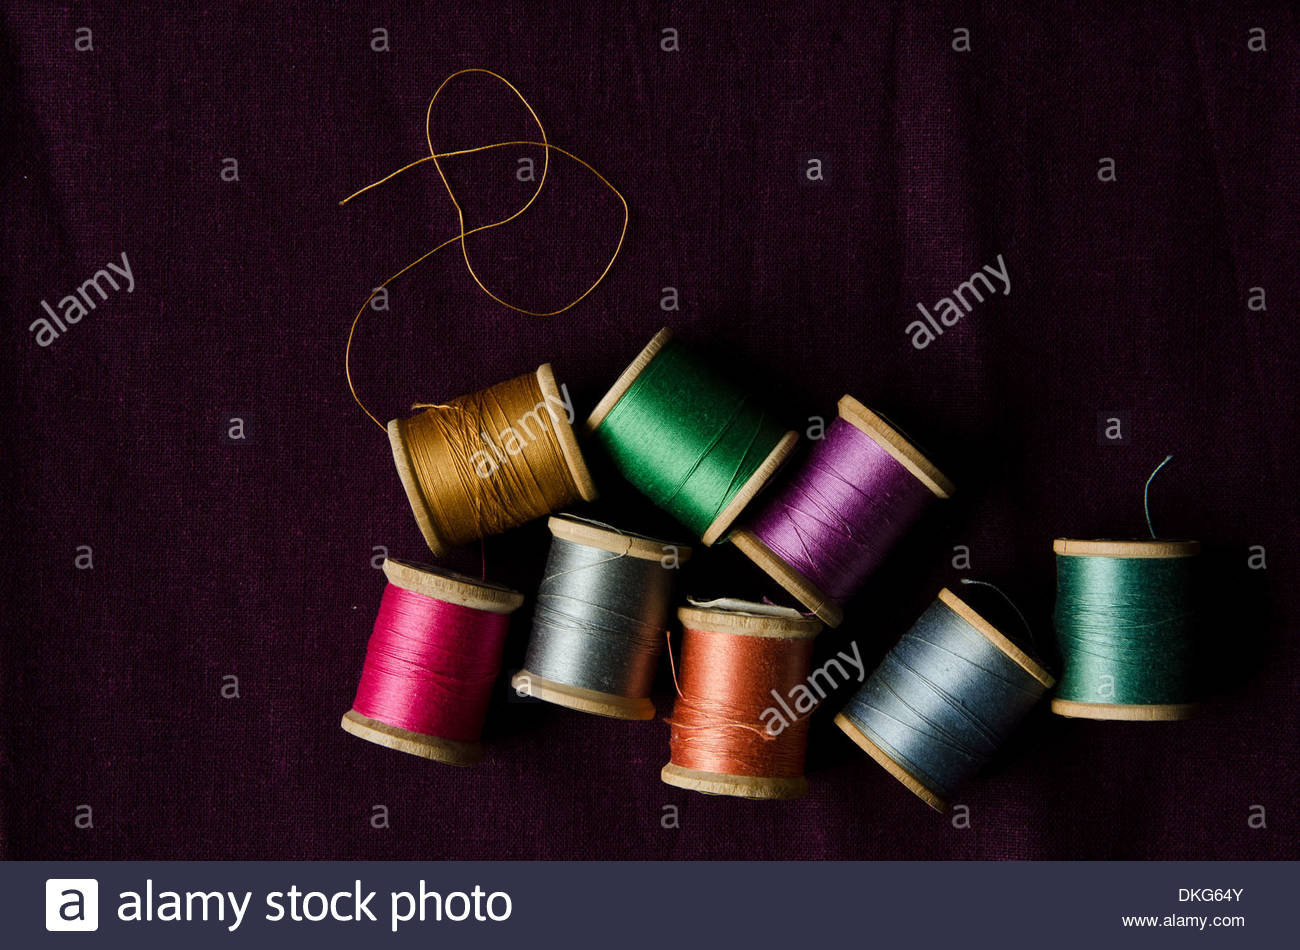 Spools of thread in different colors on black background. - Stock Image